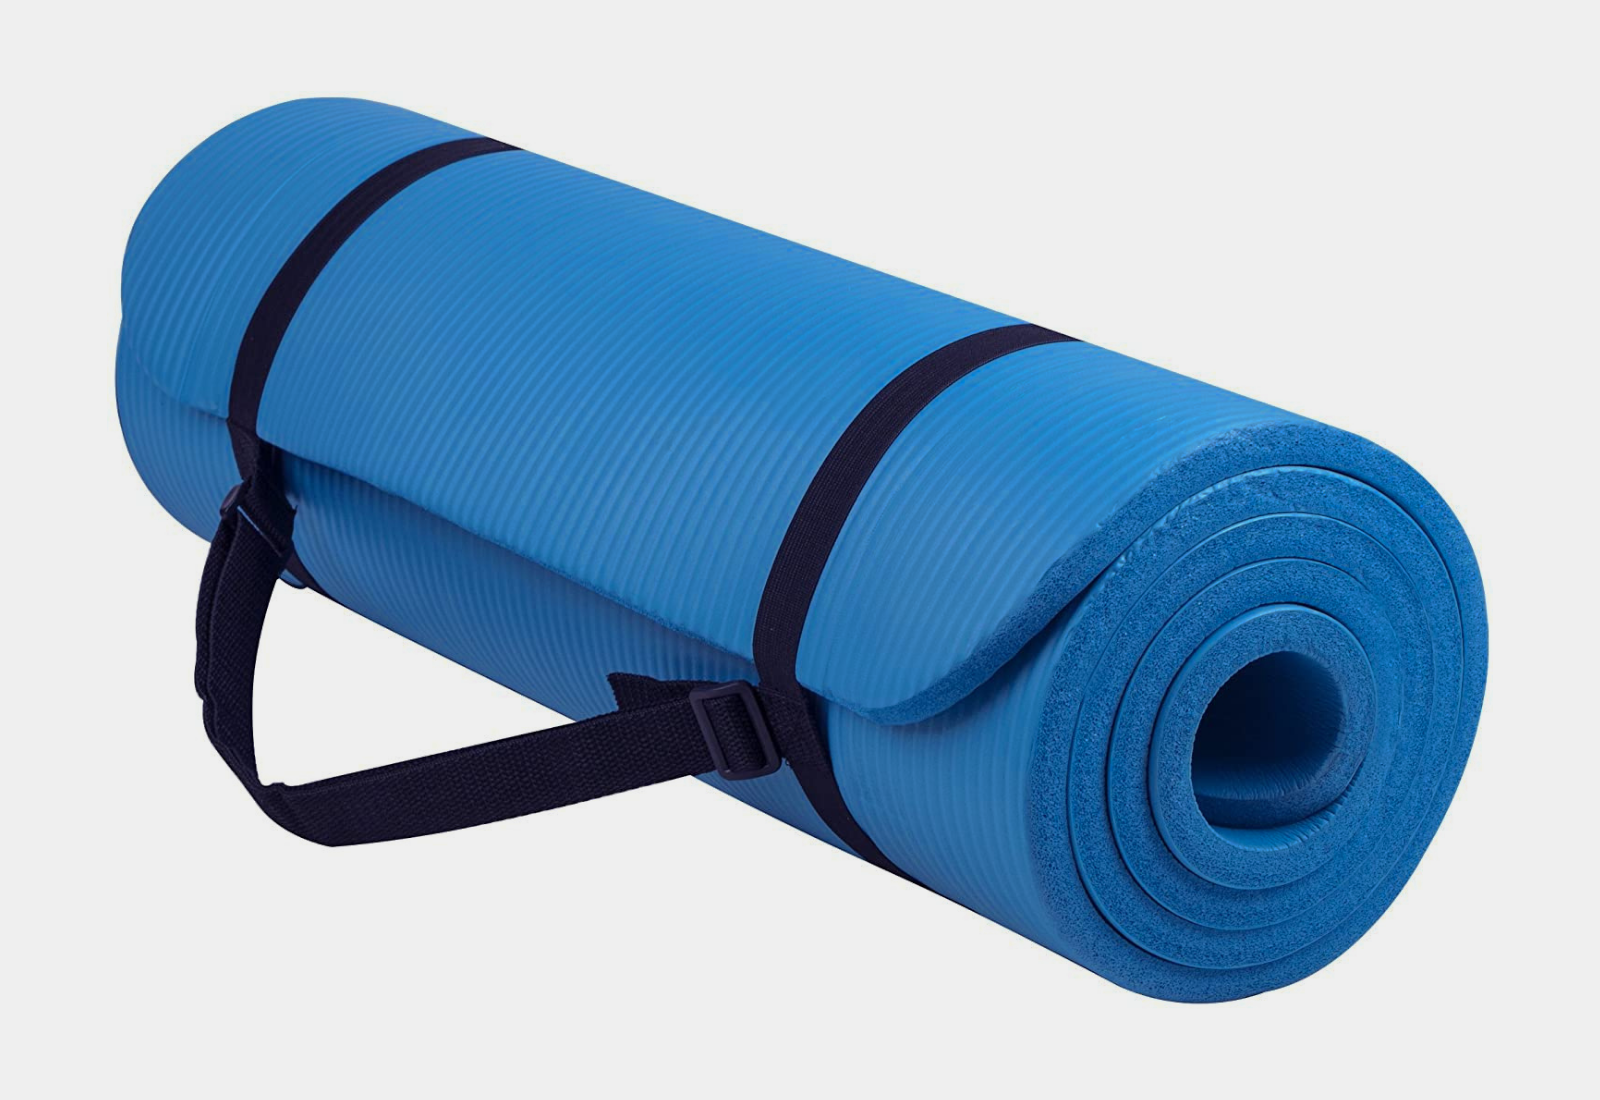 Thick Yoga and Pilates Exercise Mat with Carrying Strap